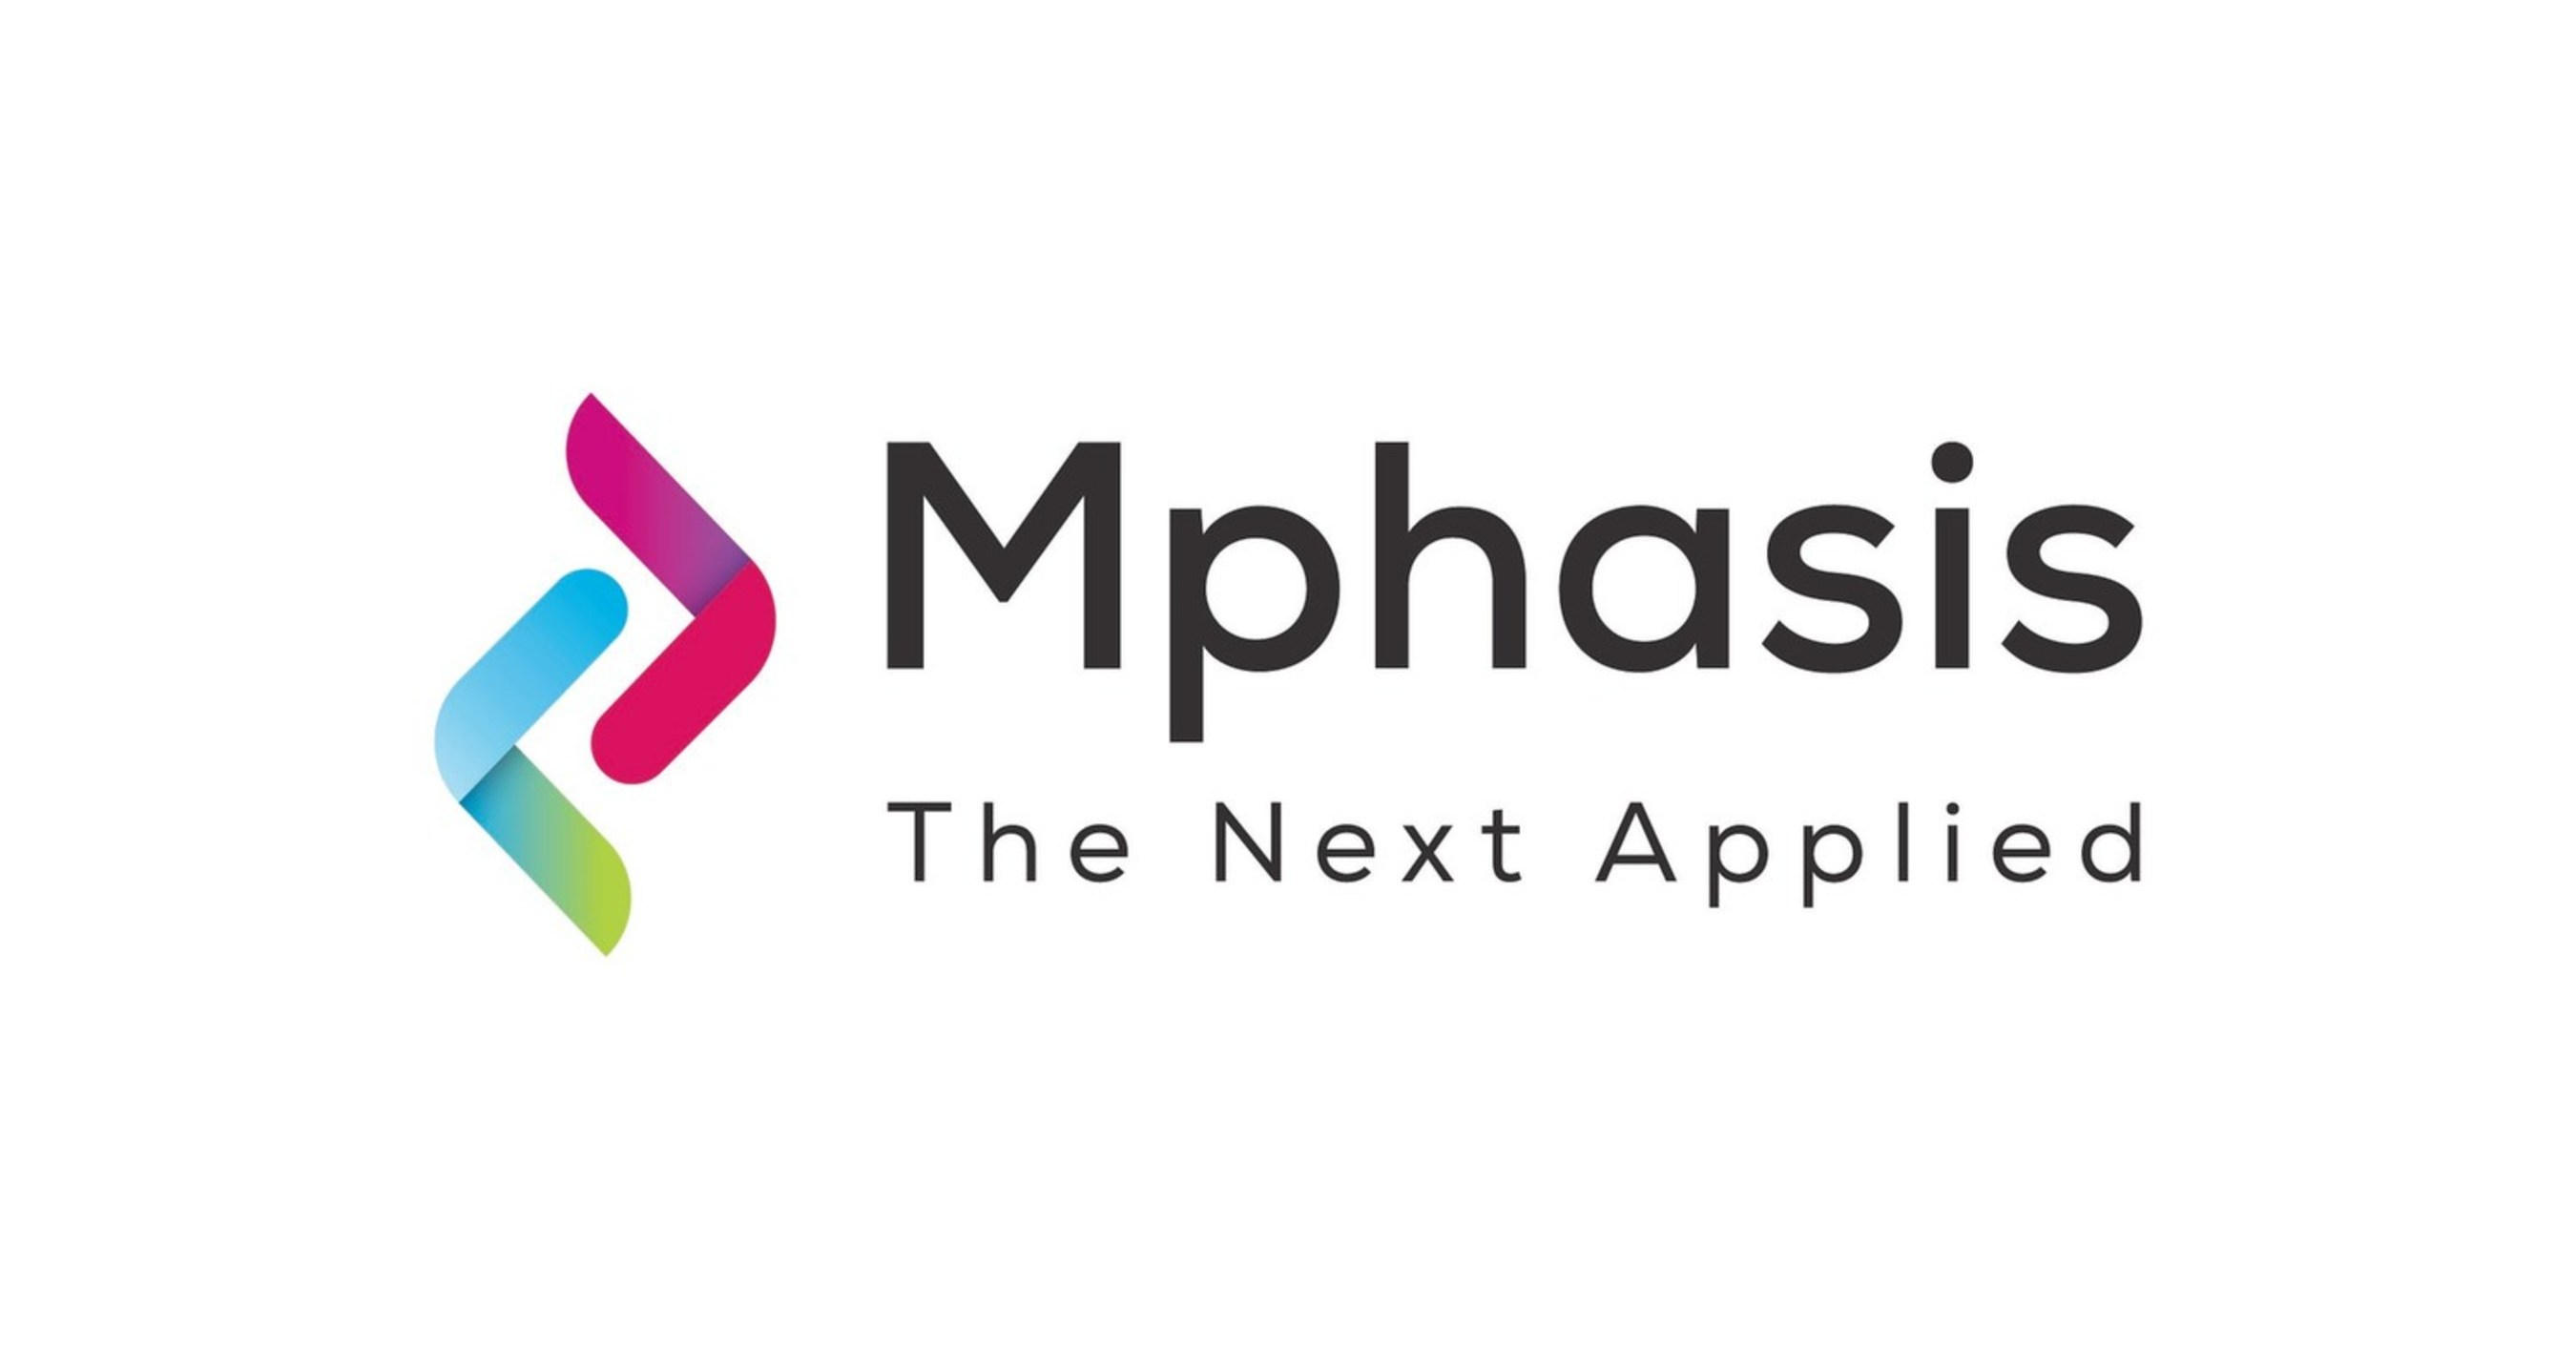 Mphasis Positioned as Major Contender and Star Performer for Financial Crime and Compliance (FCC) Operations Service Providers 2021 in Everest Group's PEAK Matrix